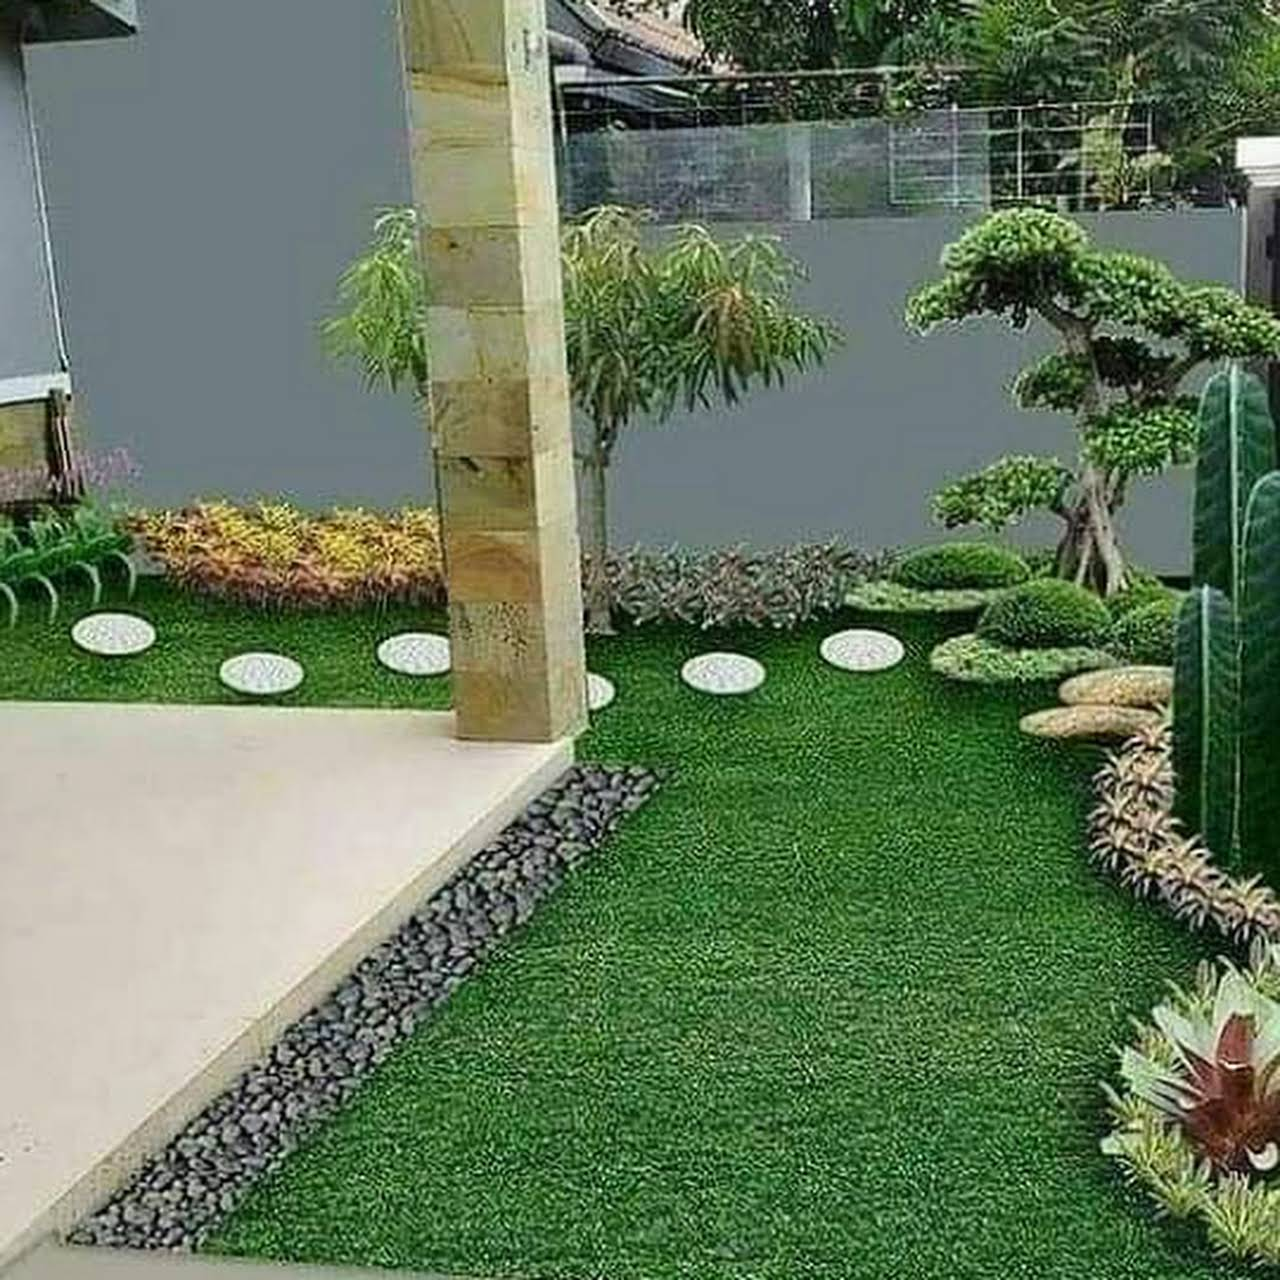 H M Landscaping And Garden Services Nigeria Limited Landscape Contractors In Abuja